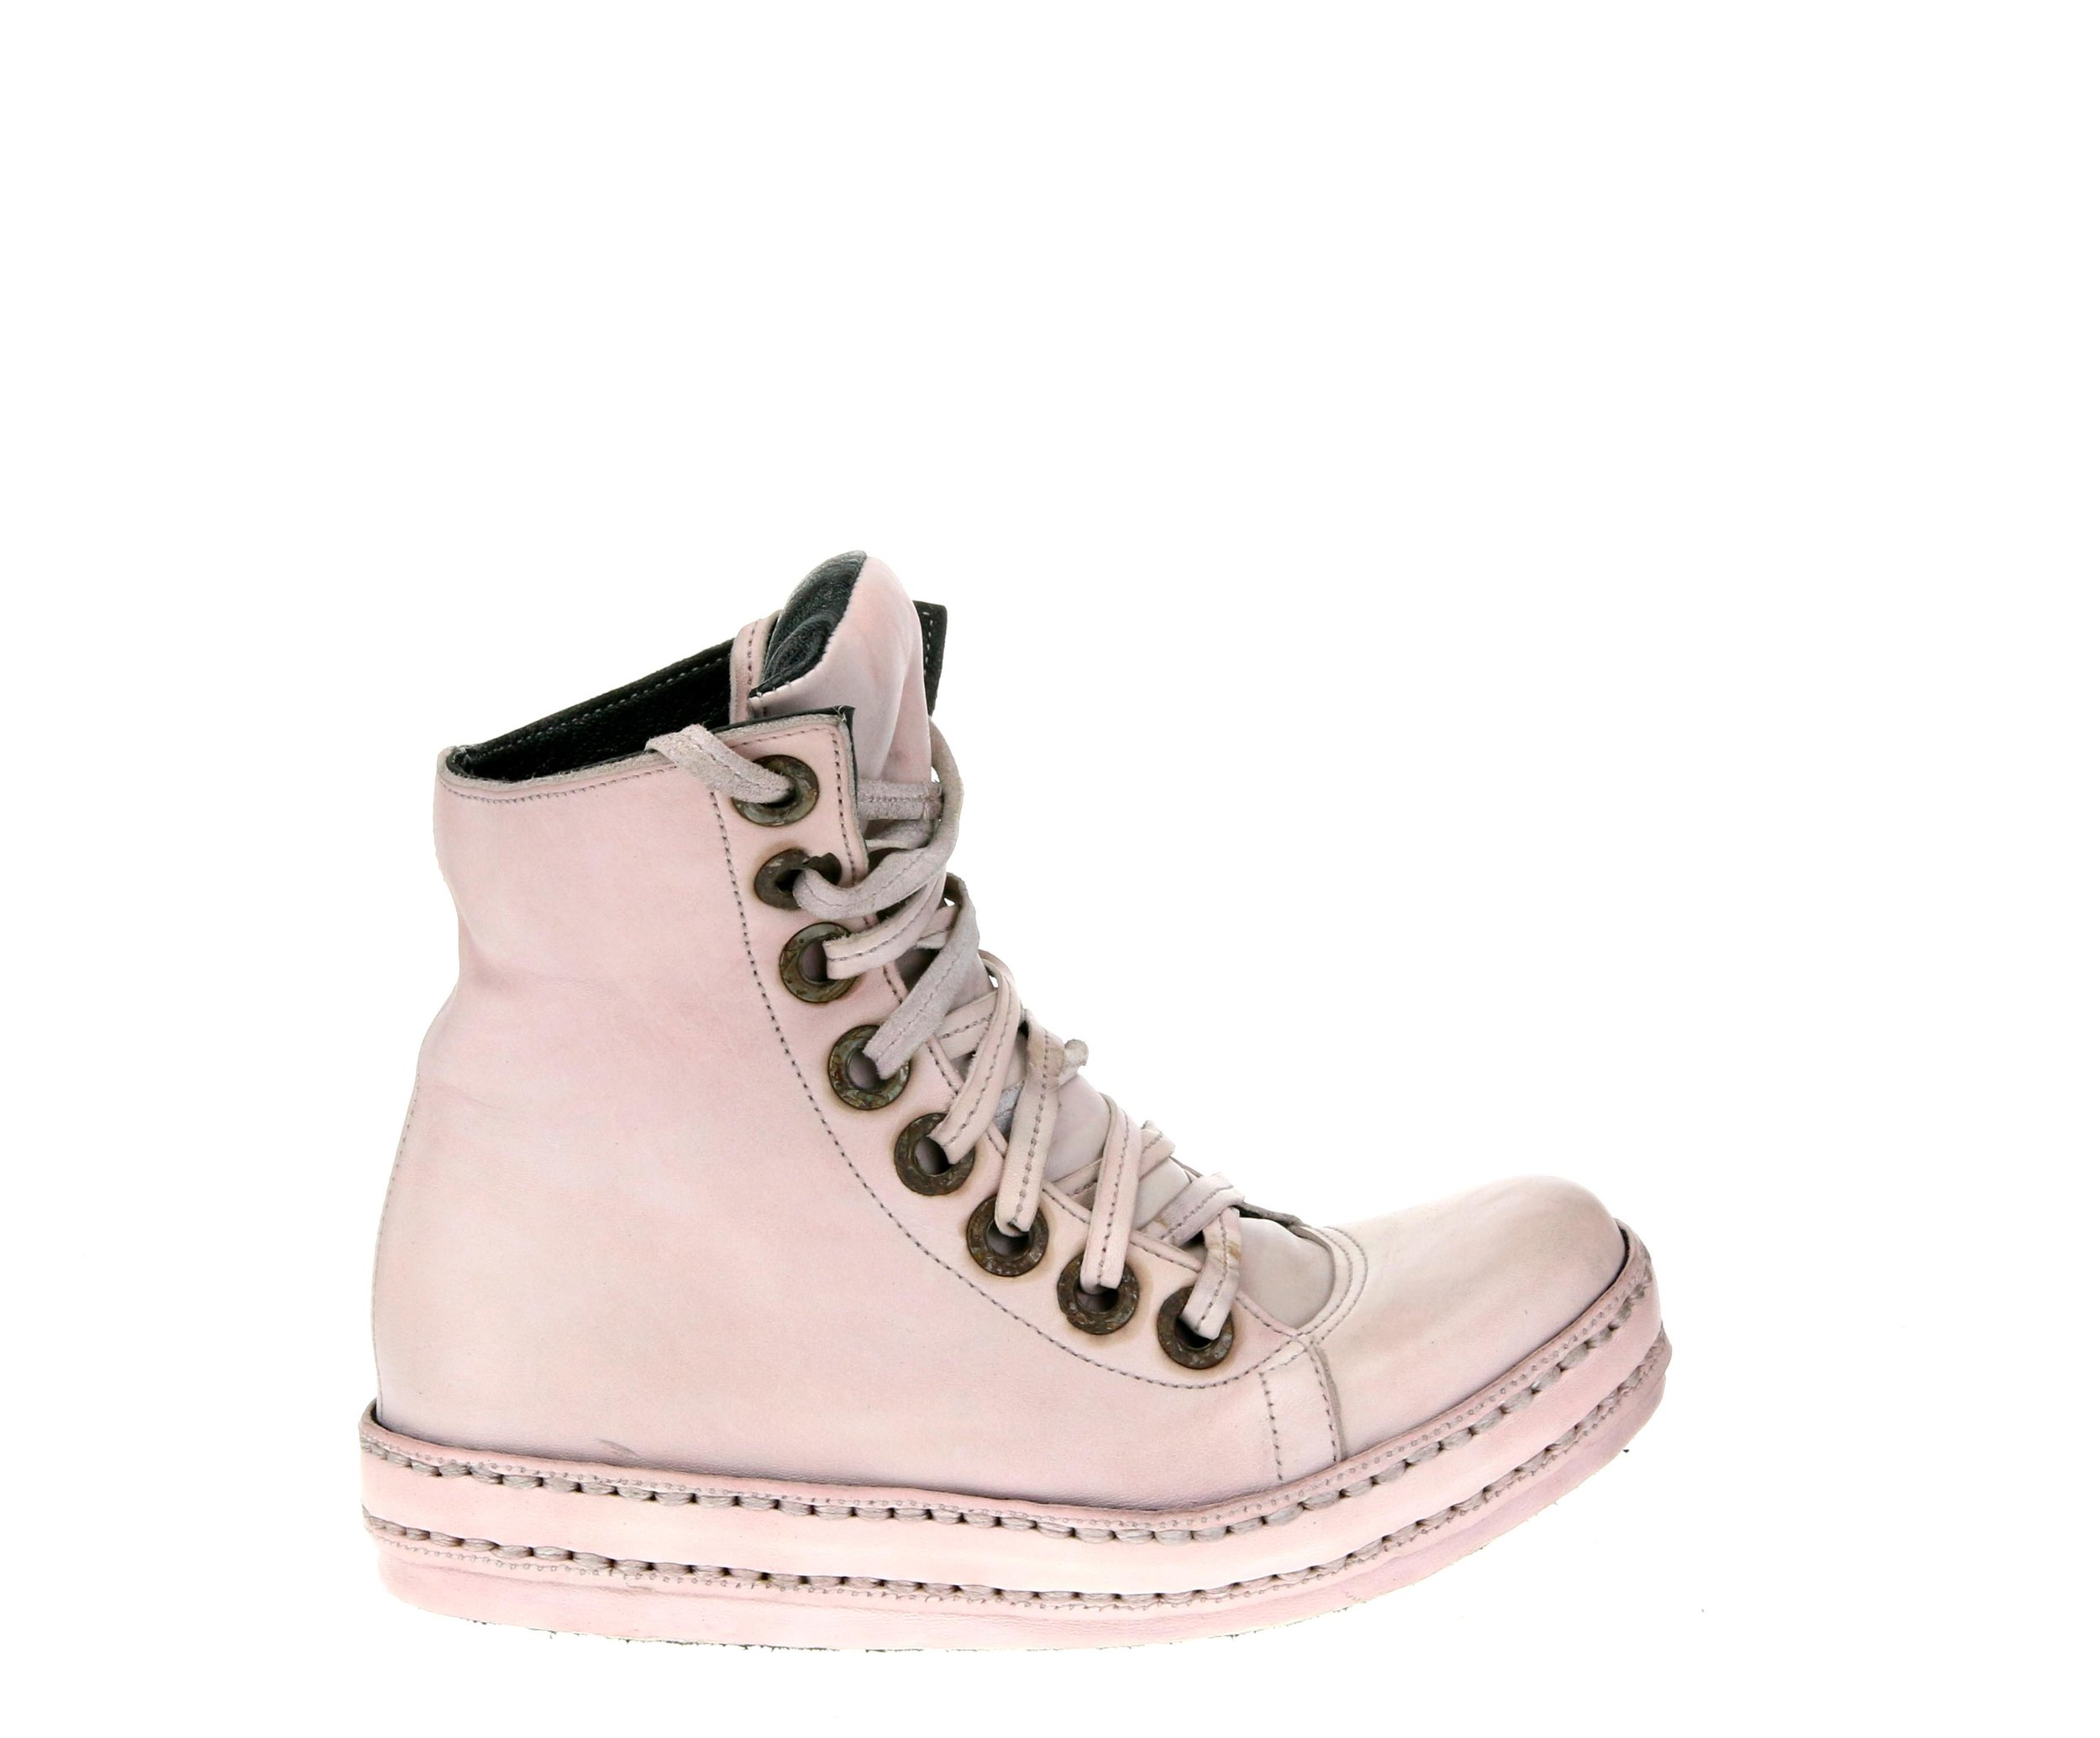 8Hole Light Pink